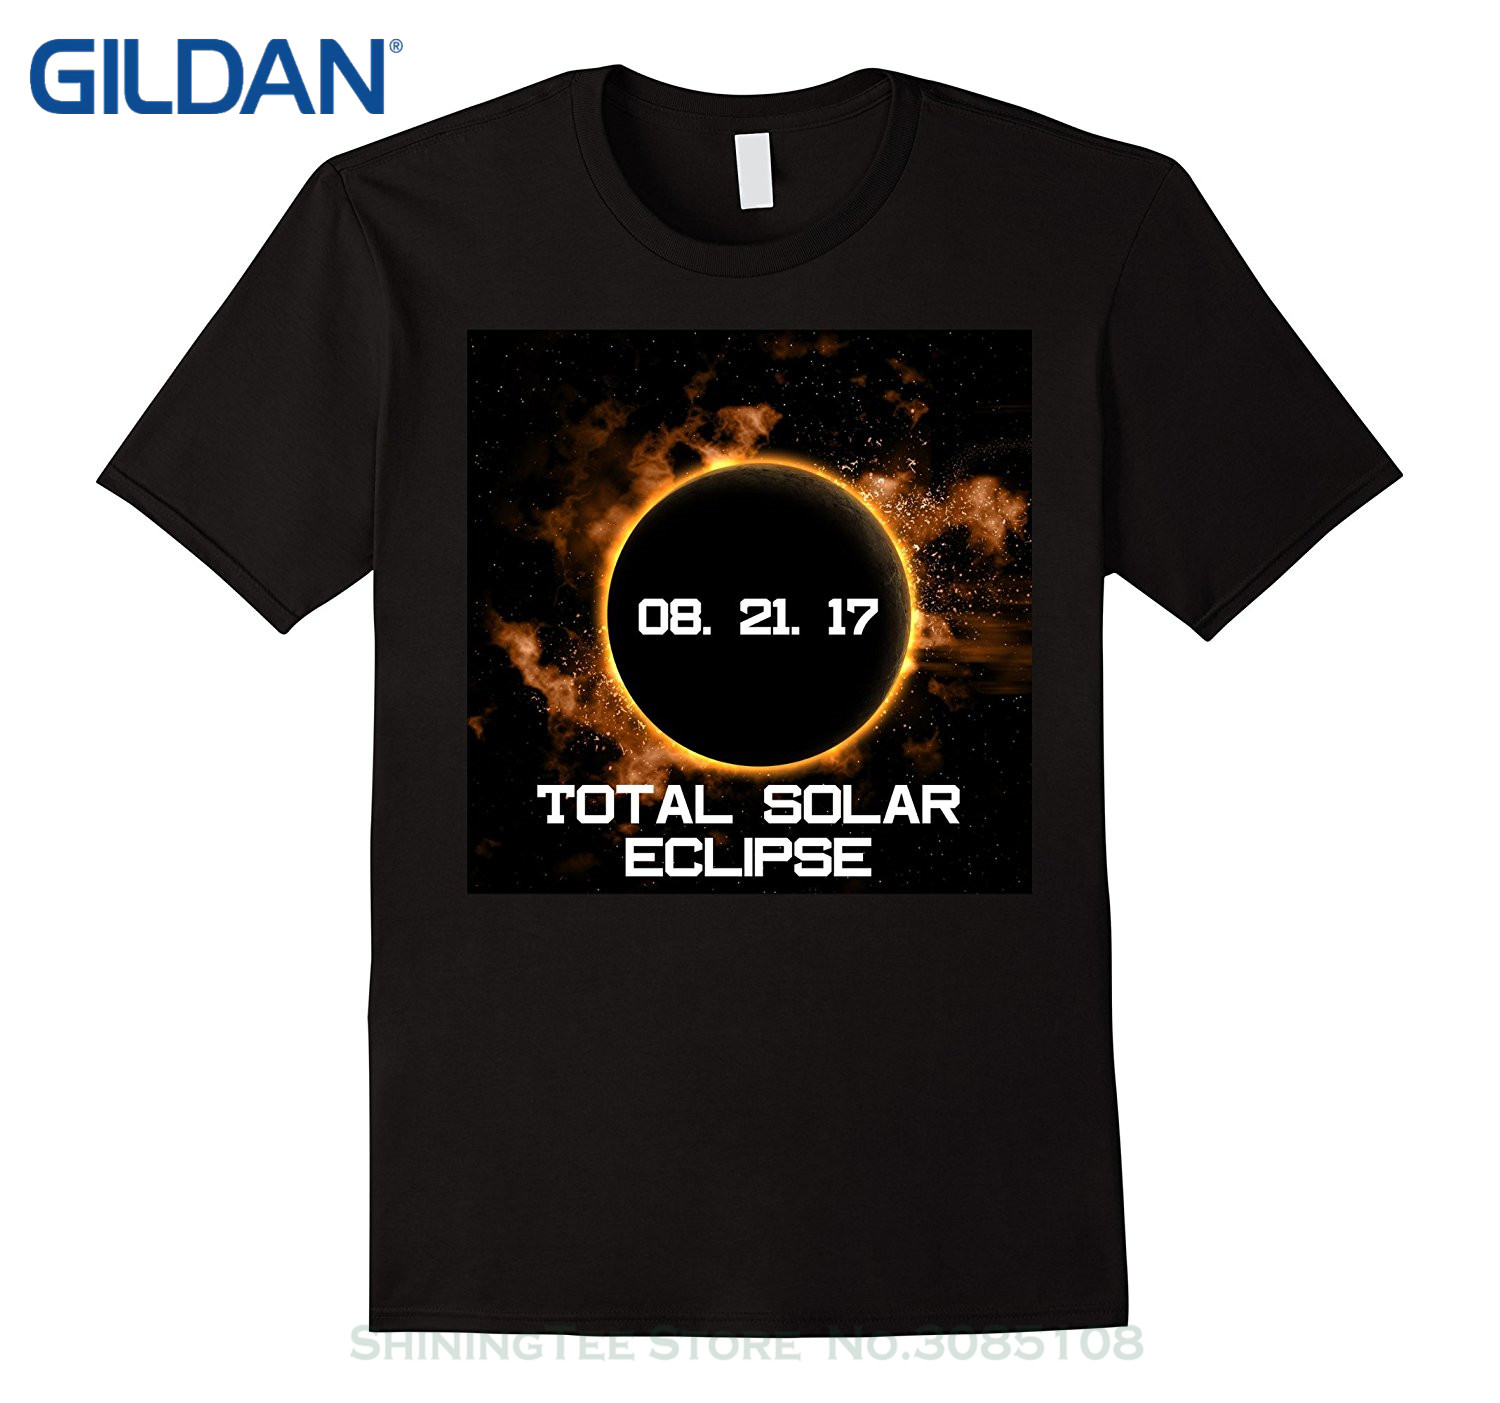 GILDAN Top Tee 100% Cotton Humor Men Crewneck Tee Shirts Total Solar Eclipse August 21 2017 T Shirt